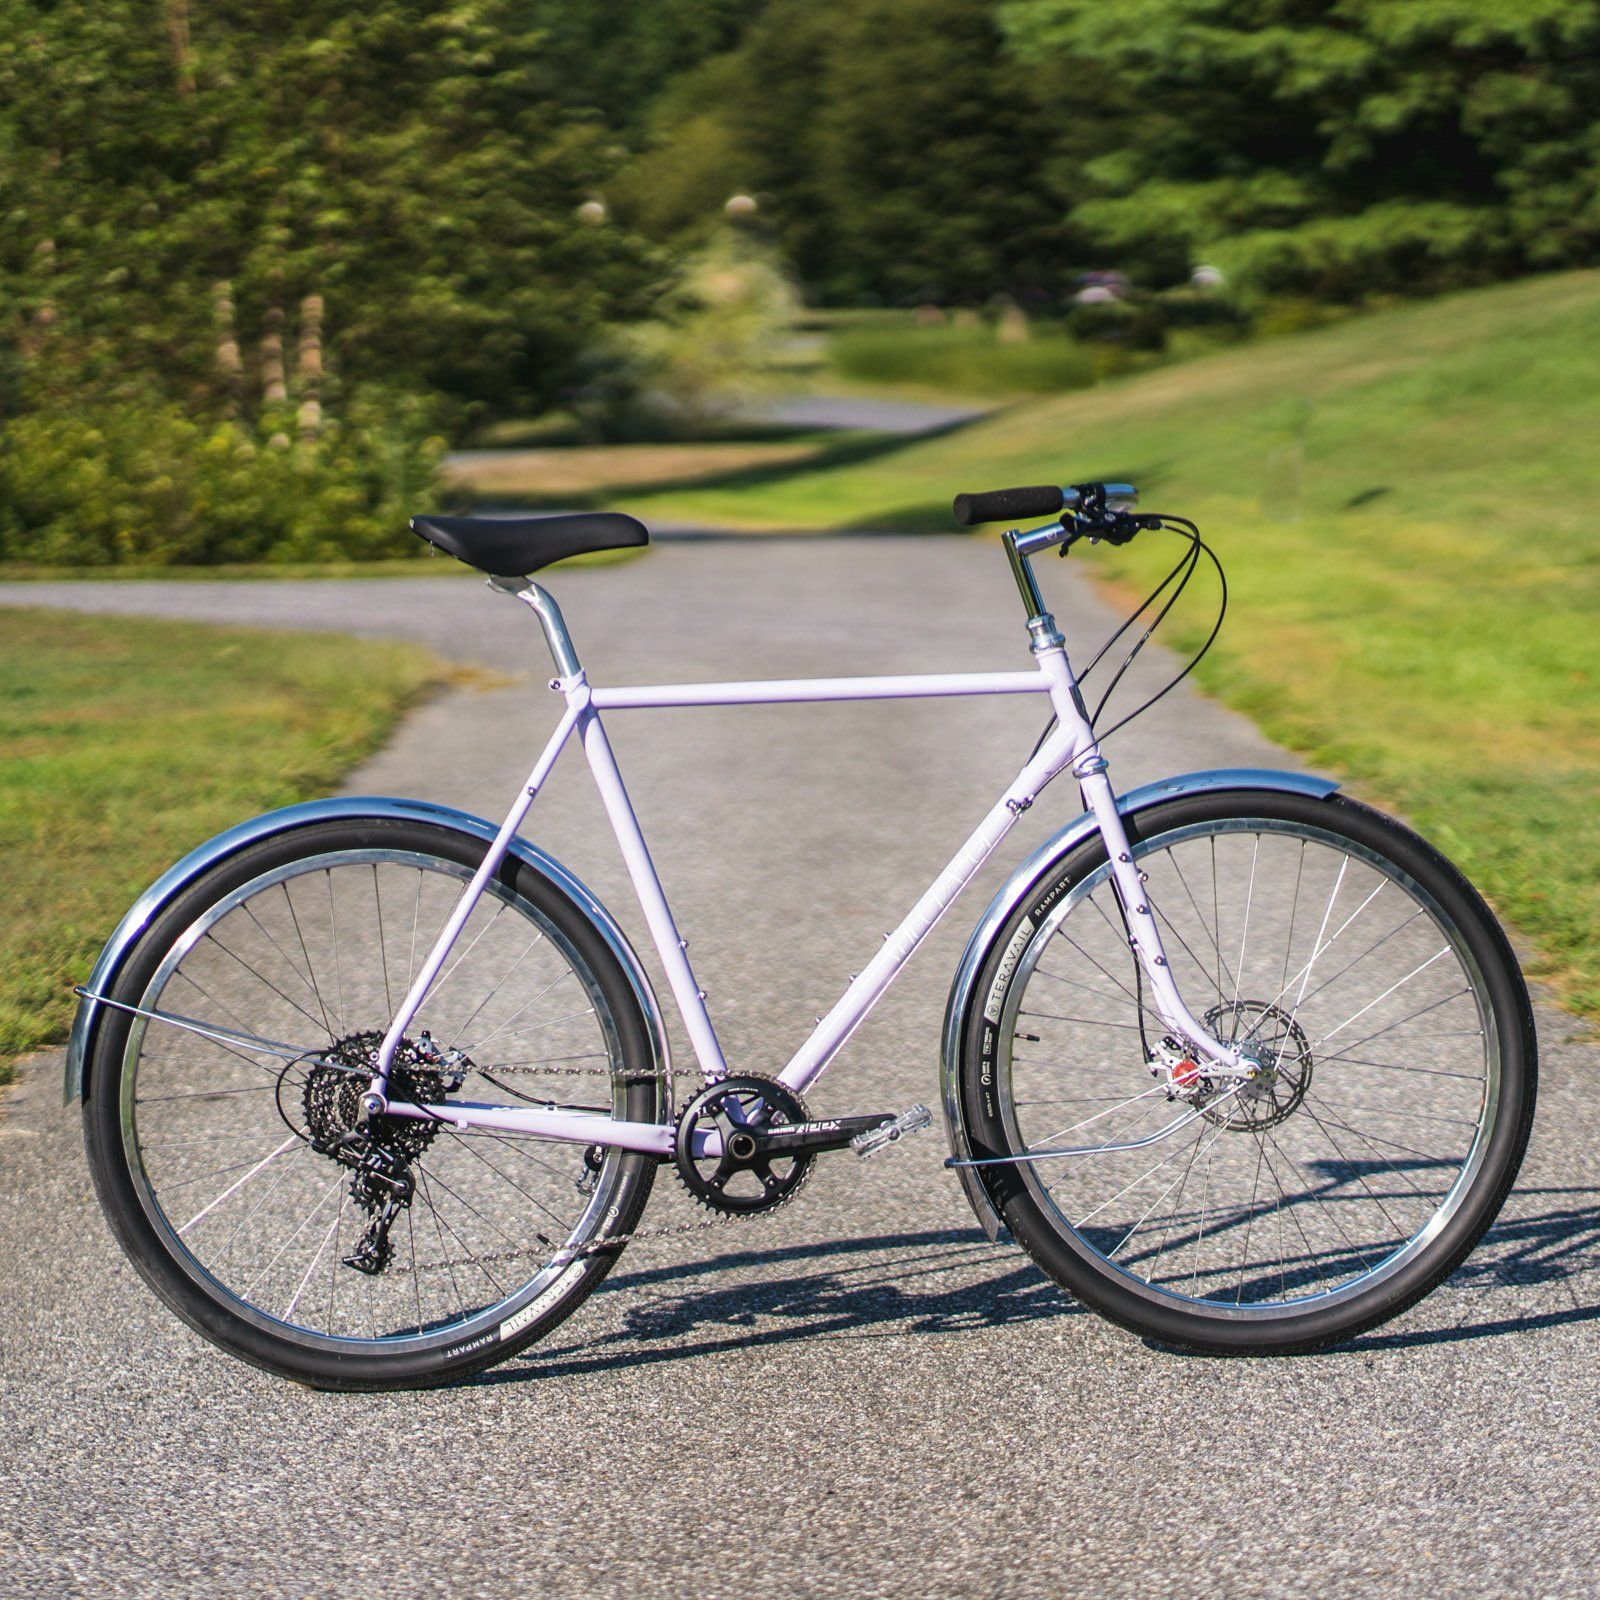 Velo Orange Piolet and Polyvalent Now Offered as Complete Bikes 19